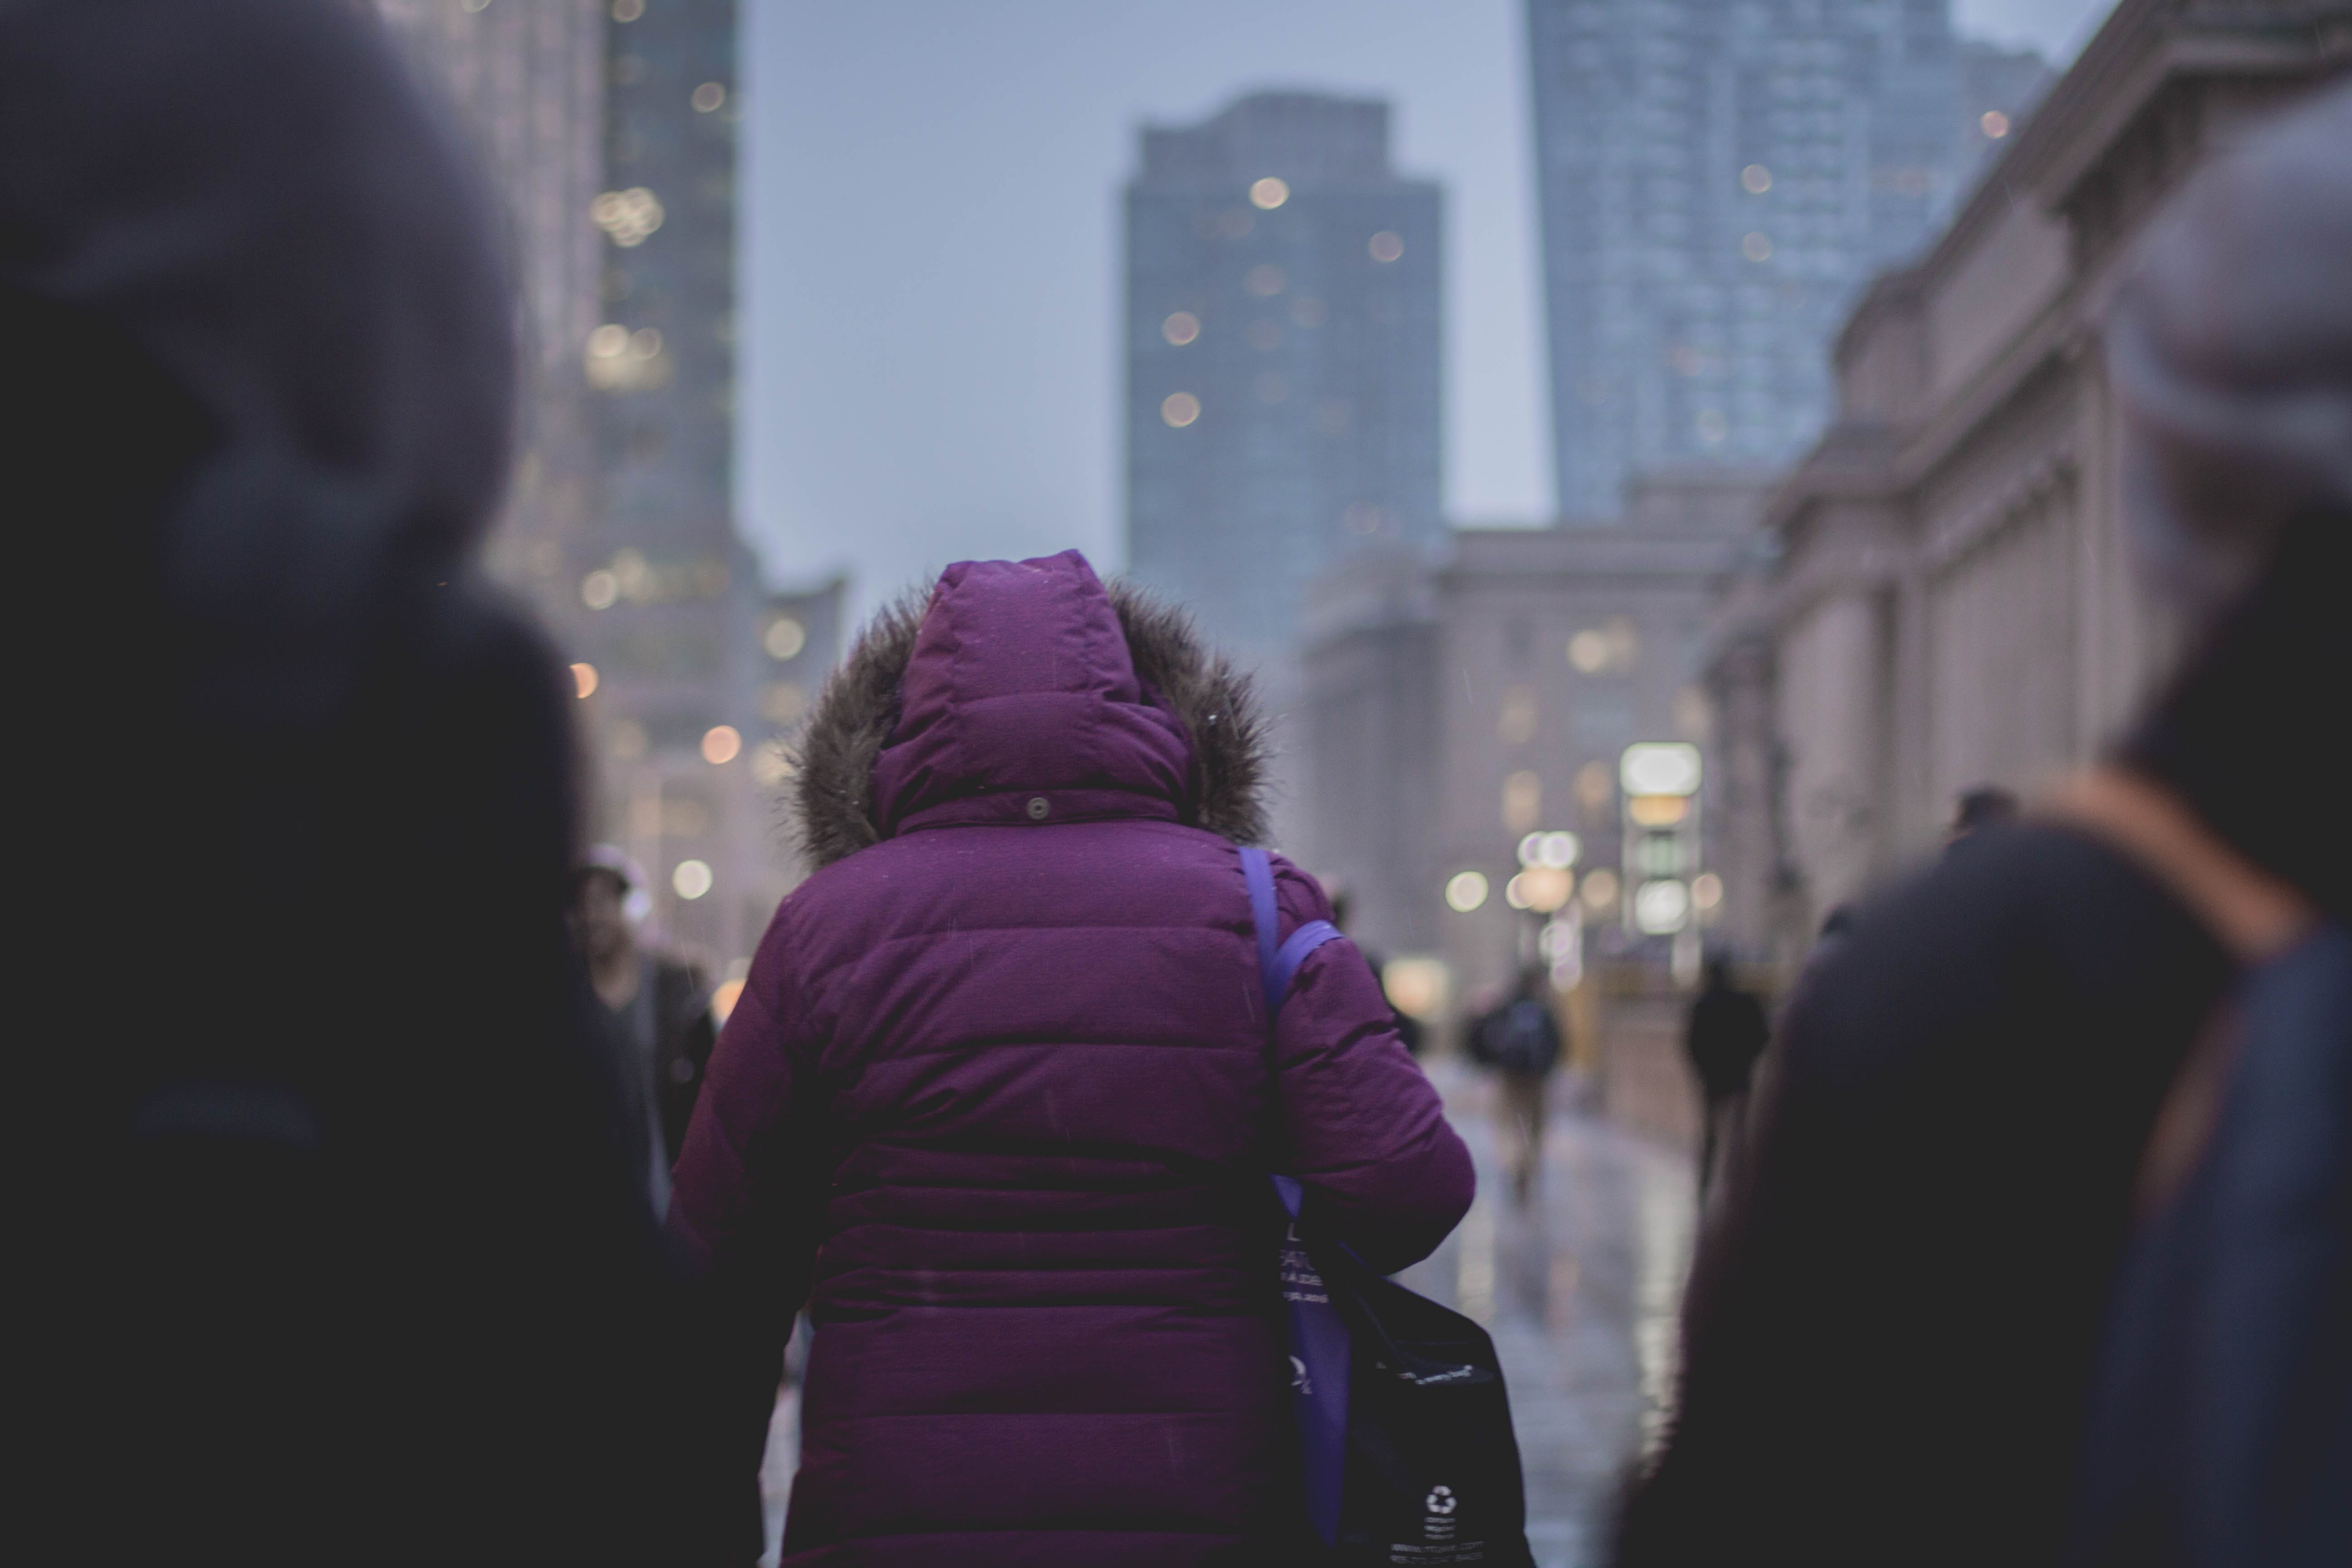 Selective Focus Photograph of Person Wearing Purple Hoodie Jacket Walking on Street